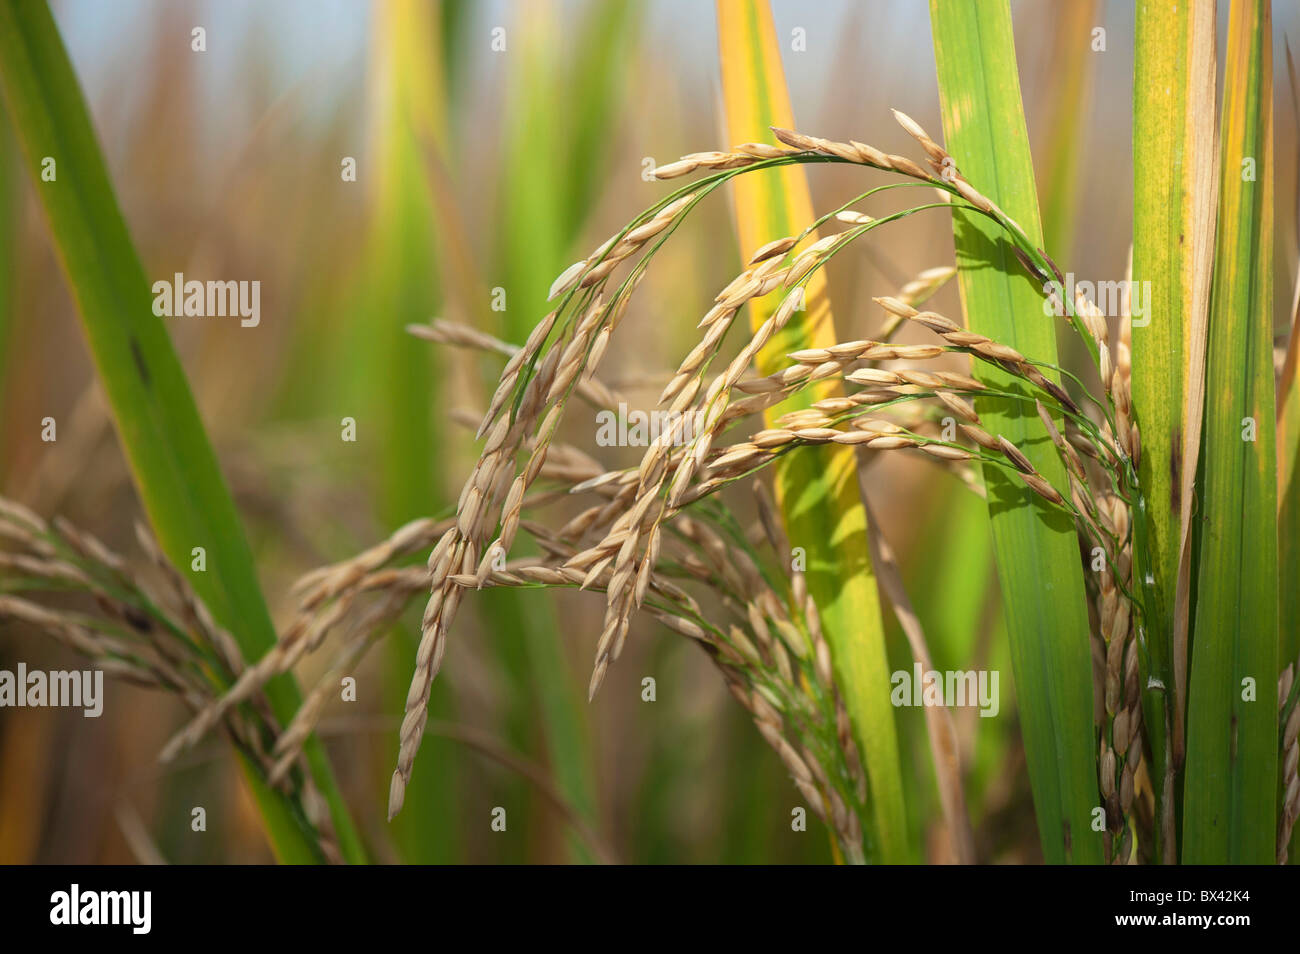 Rice seed for planting - Ripe Rice Grain Seed On The Plant In A Paddy Field Ready For Harvesting In India